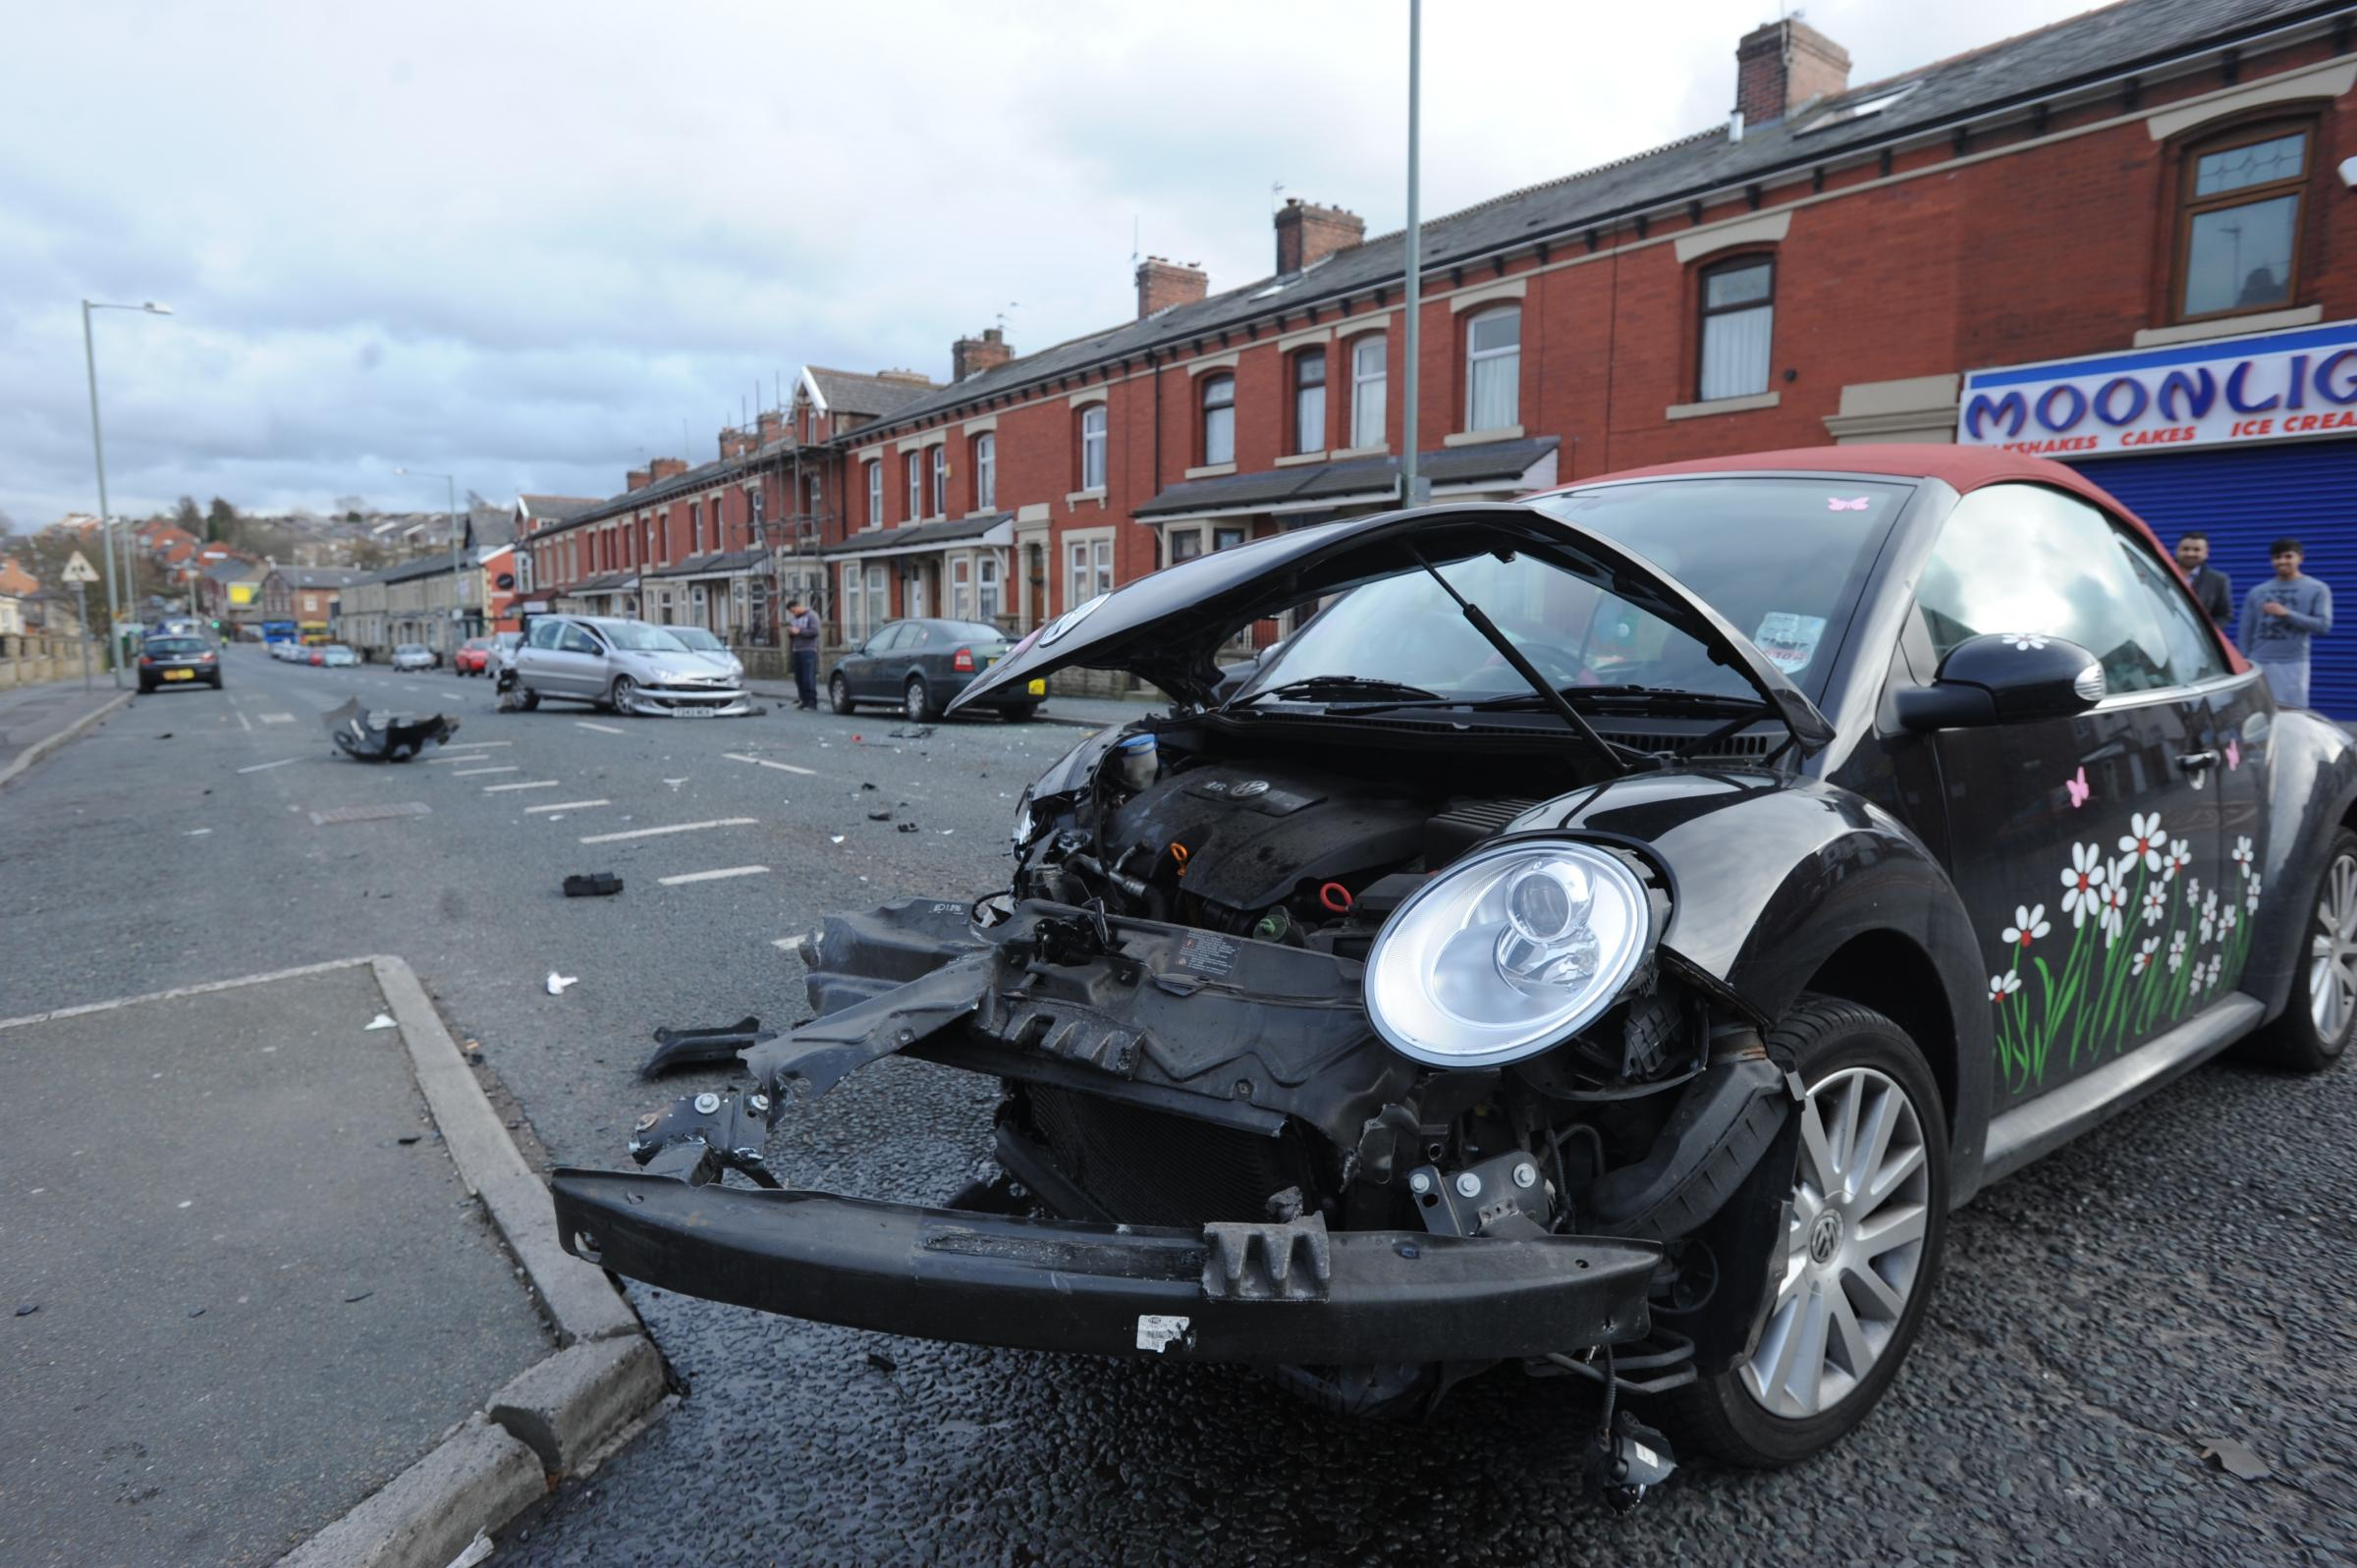 Man arrested after dramatic rush hour smash in Audley